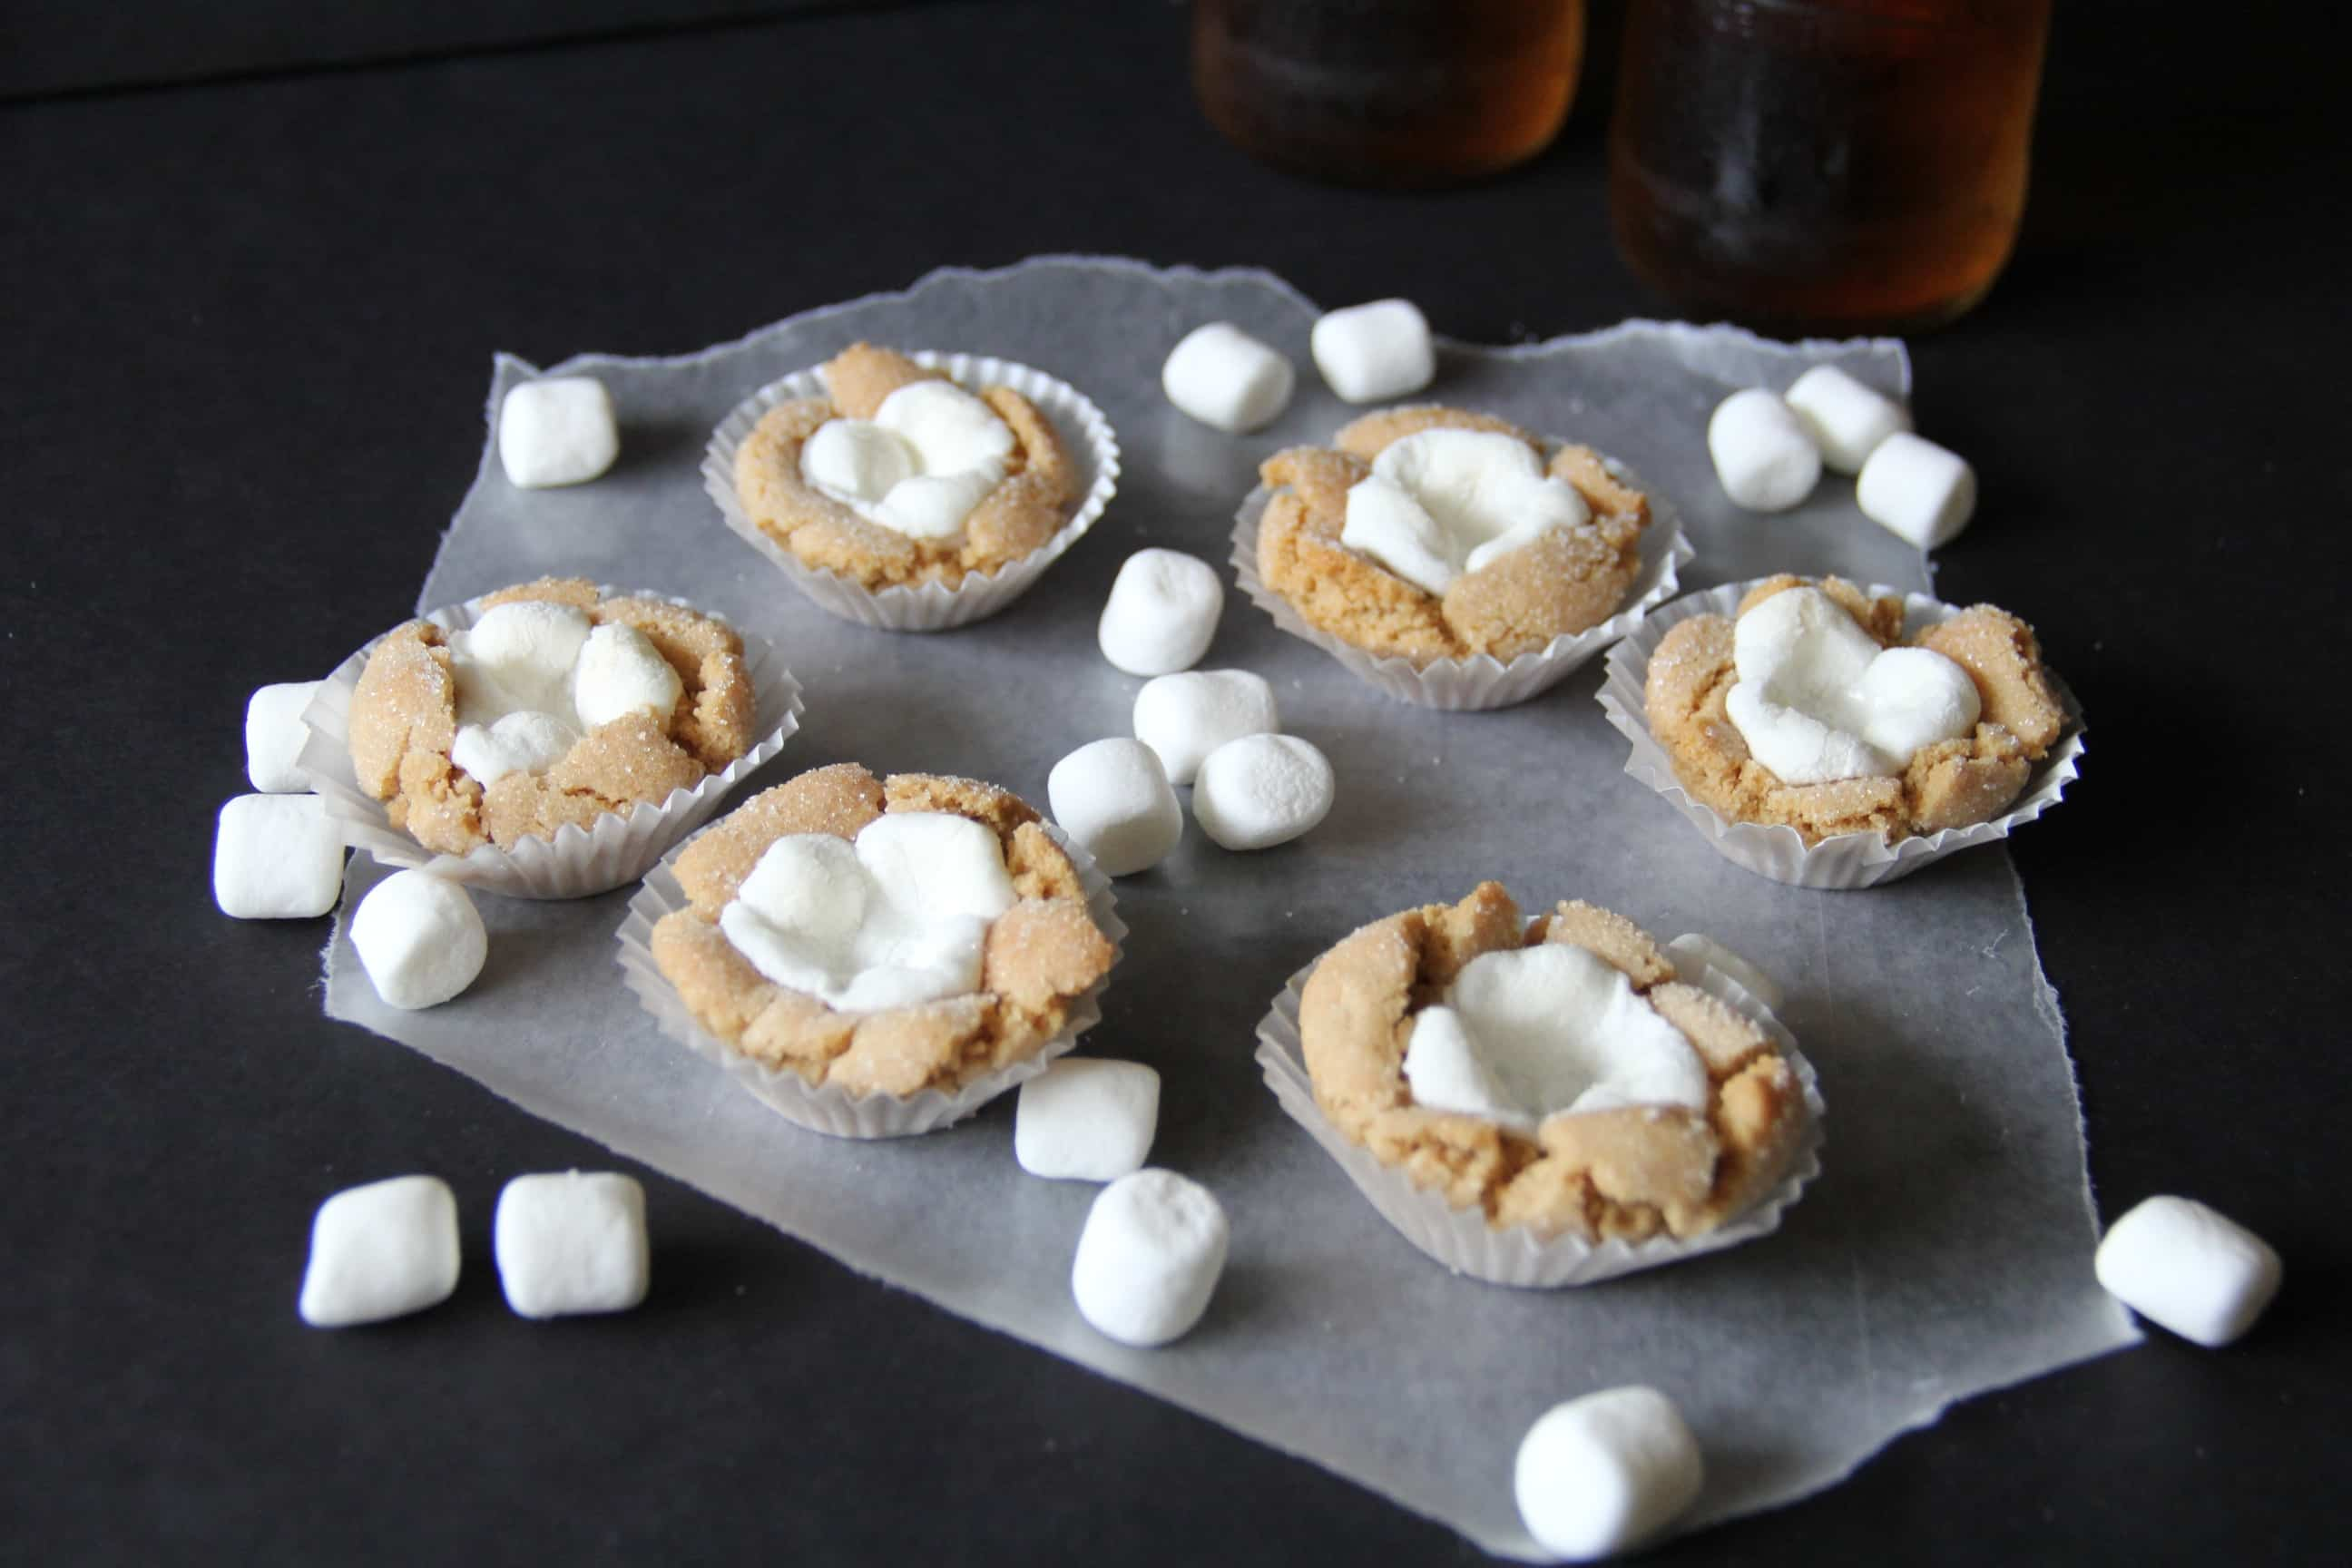 Marshmallow and Peanut Butter Cookie Recipe